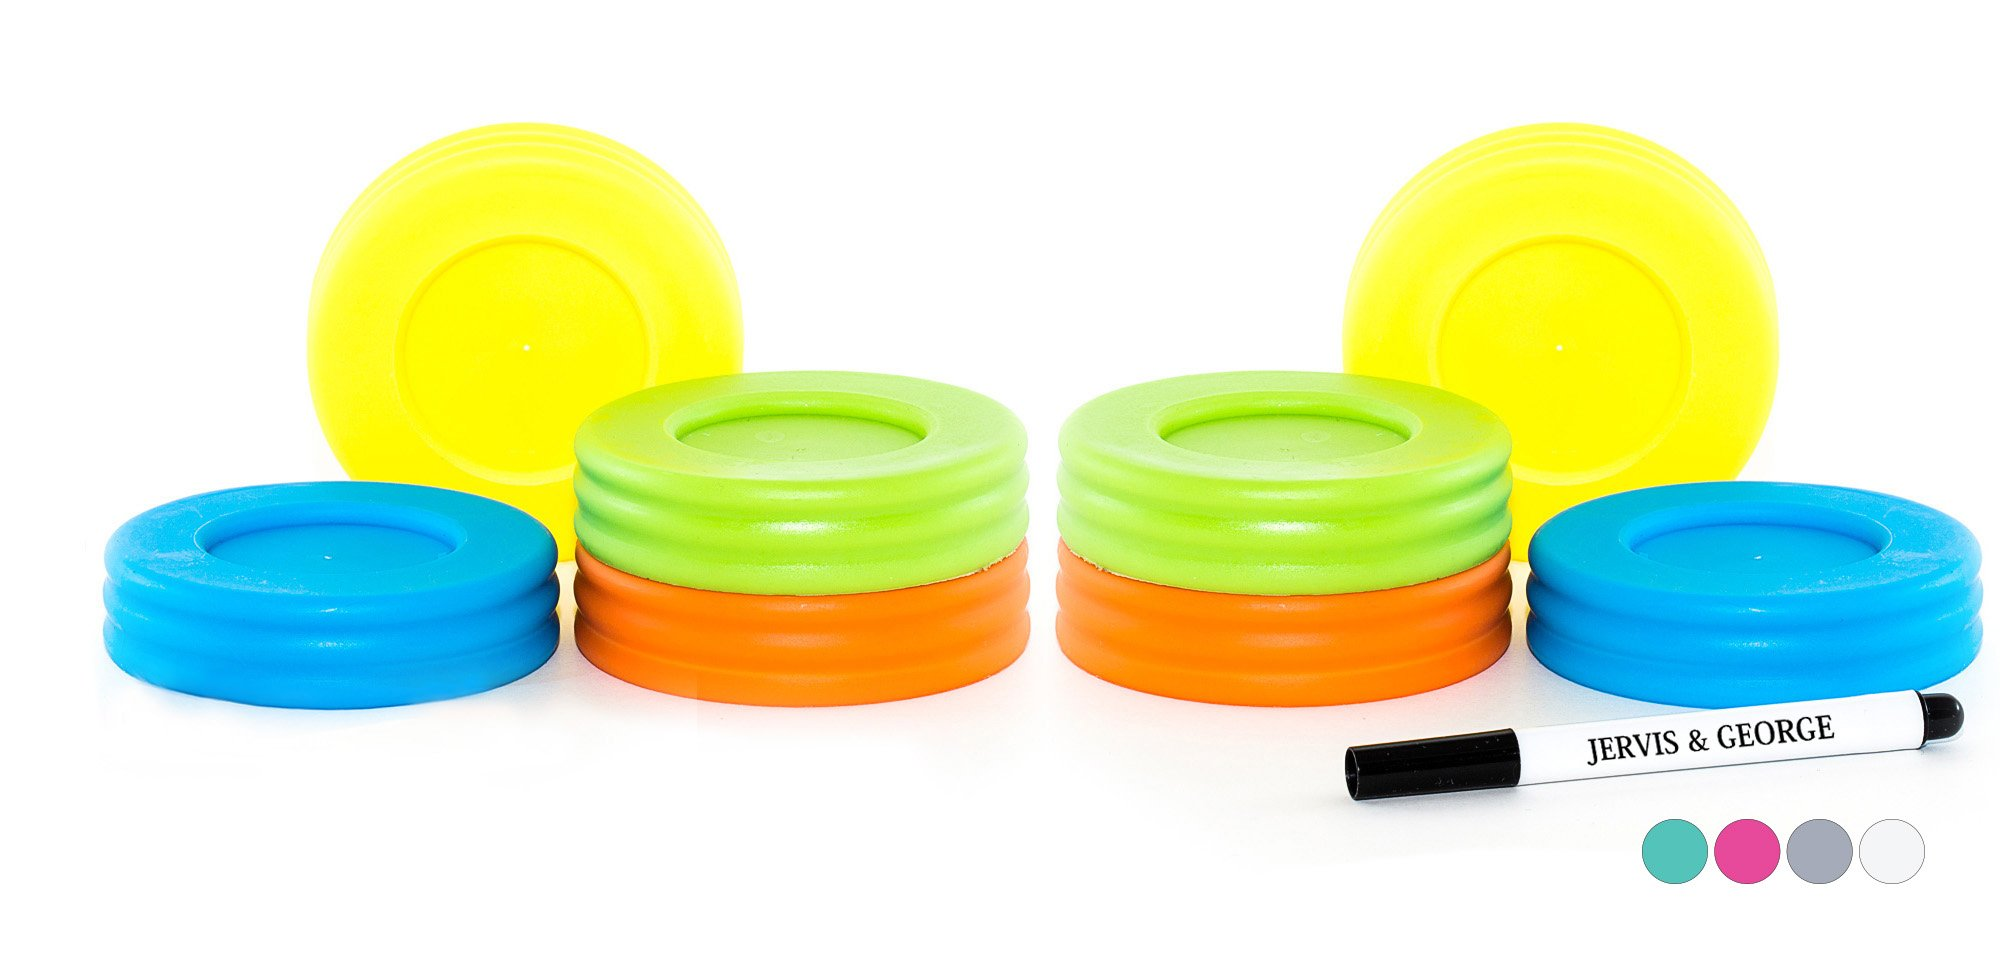 Mason Jar Lids - Compatible with Regular Mouth Size Ball Jars - Reusable and Leak Proof Plastic Lids are BPA Free - Includes Pen for Marking - Green, Orange, Yellow & Blue - Pack of 8